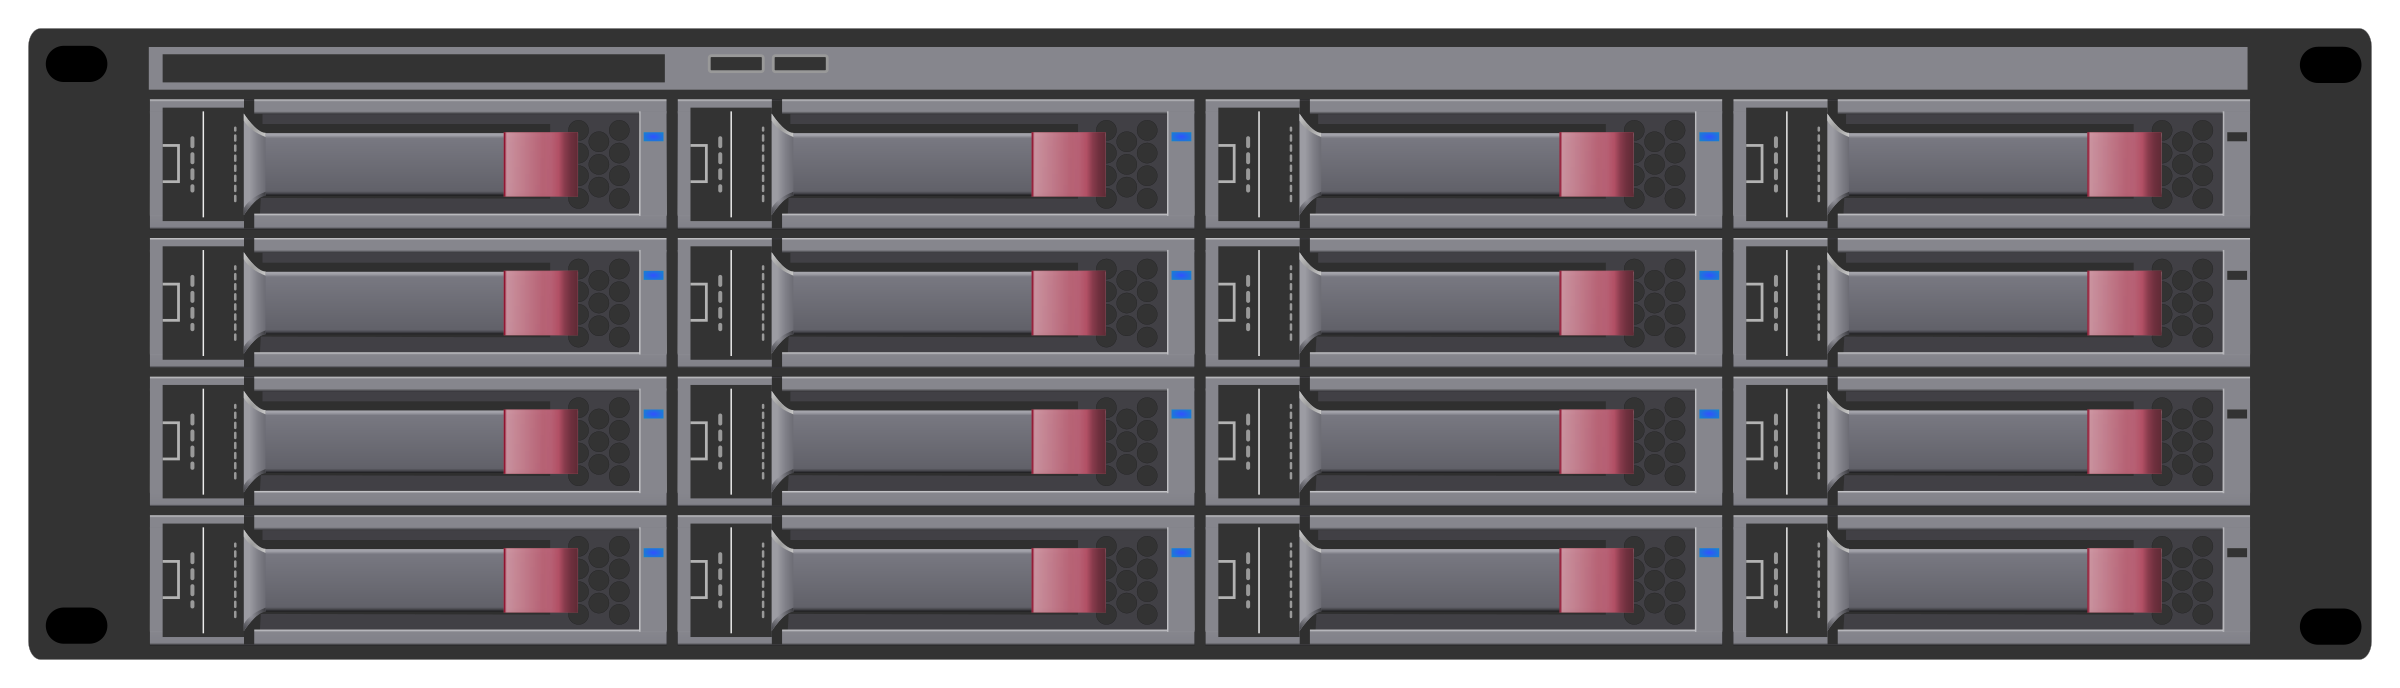 Generic Disk Array by Lalitpatanpur